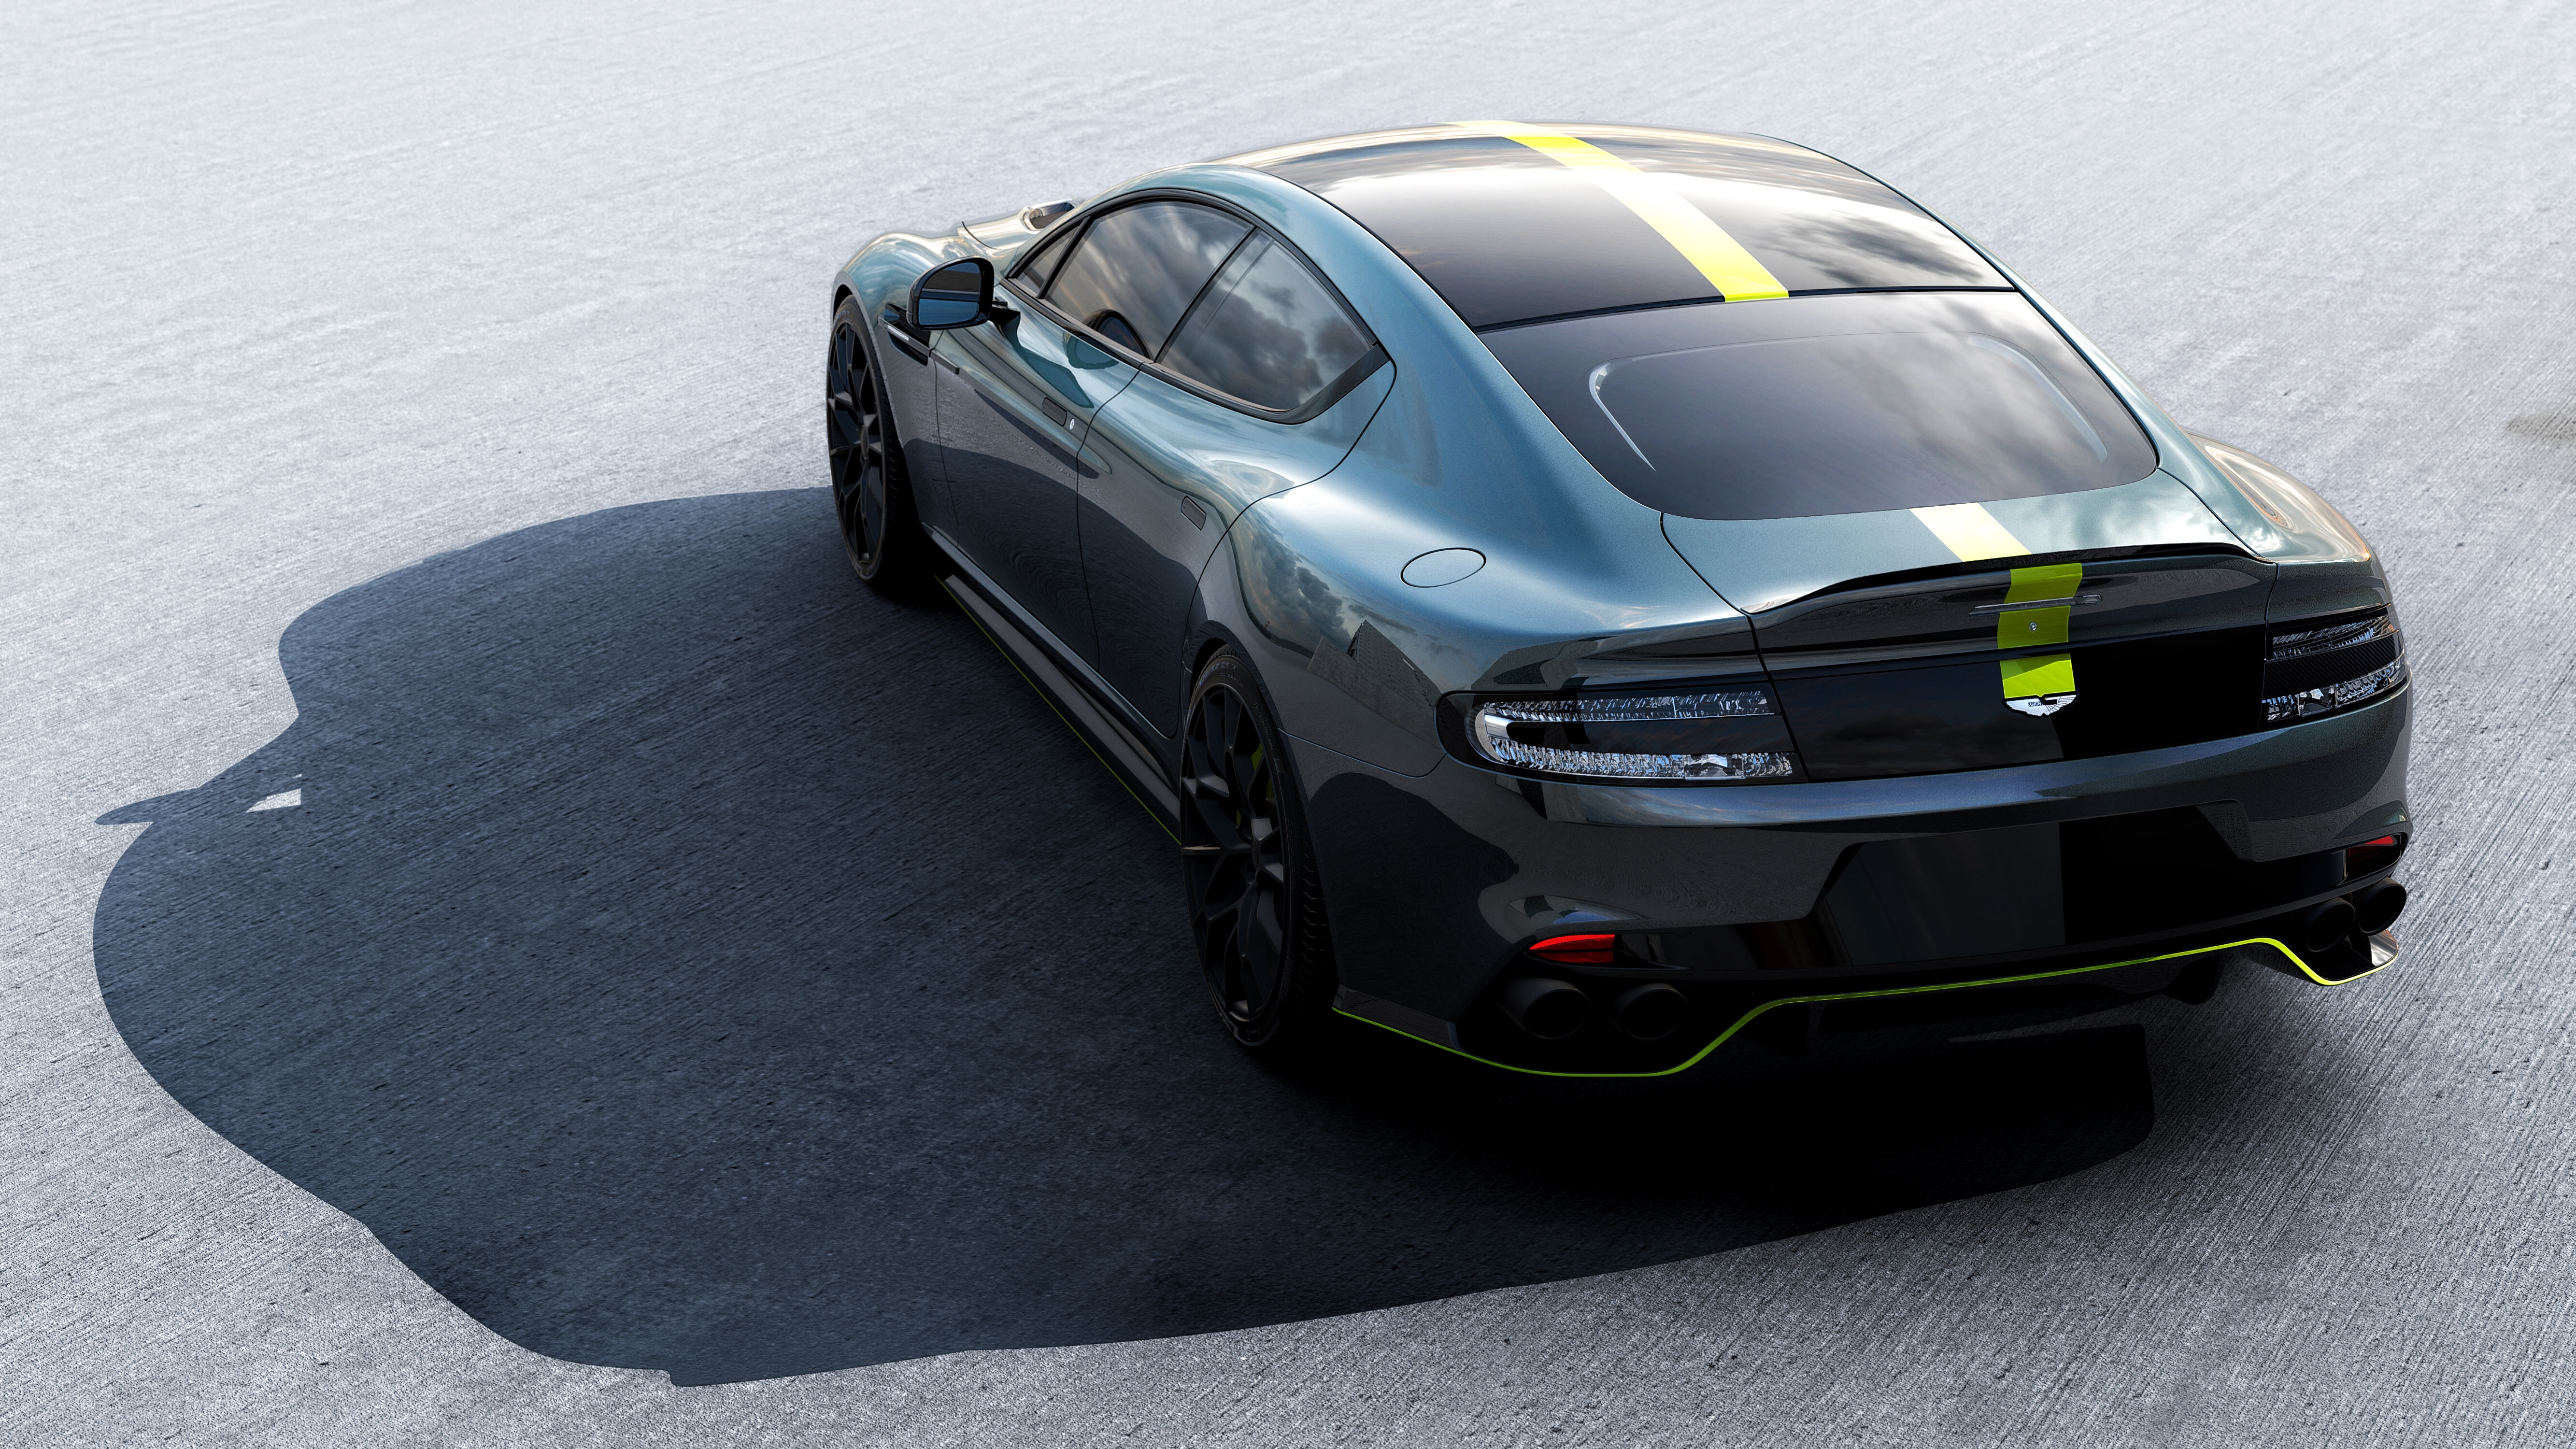 Aston Martin Makes The Amazing Rapide Sedan Even More Badass The Verge